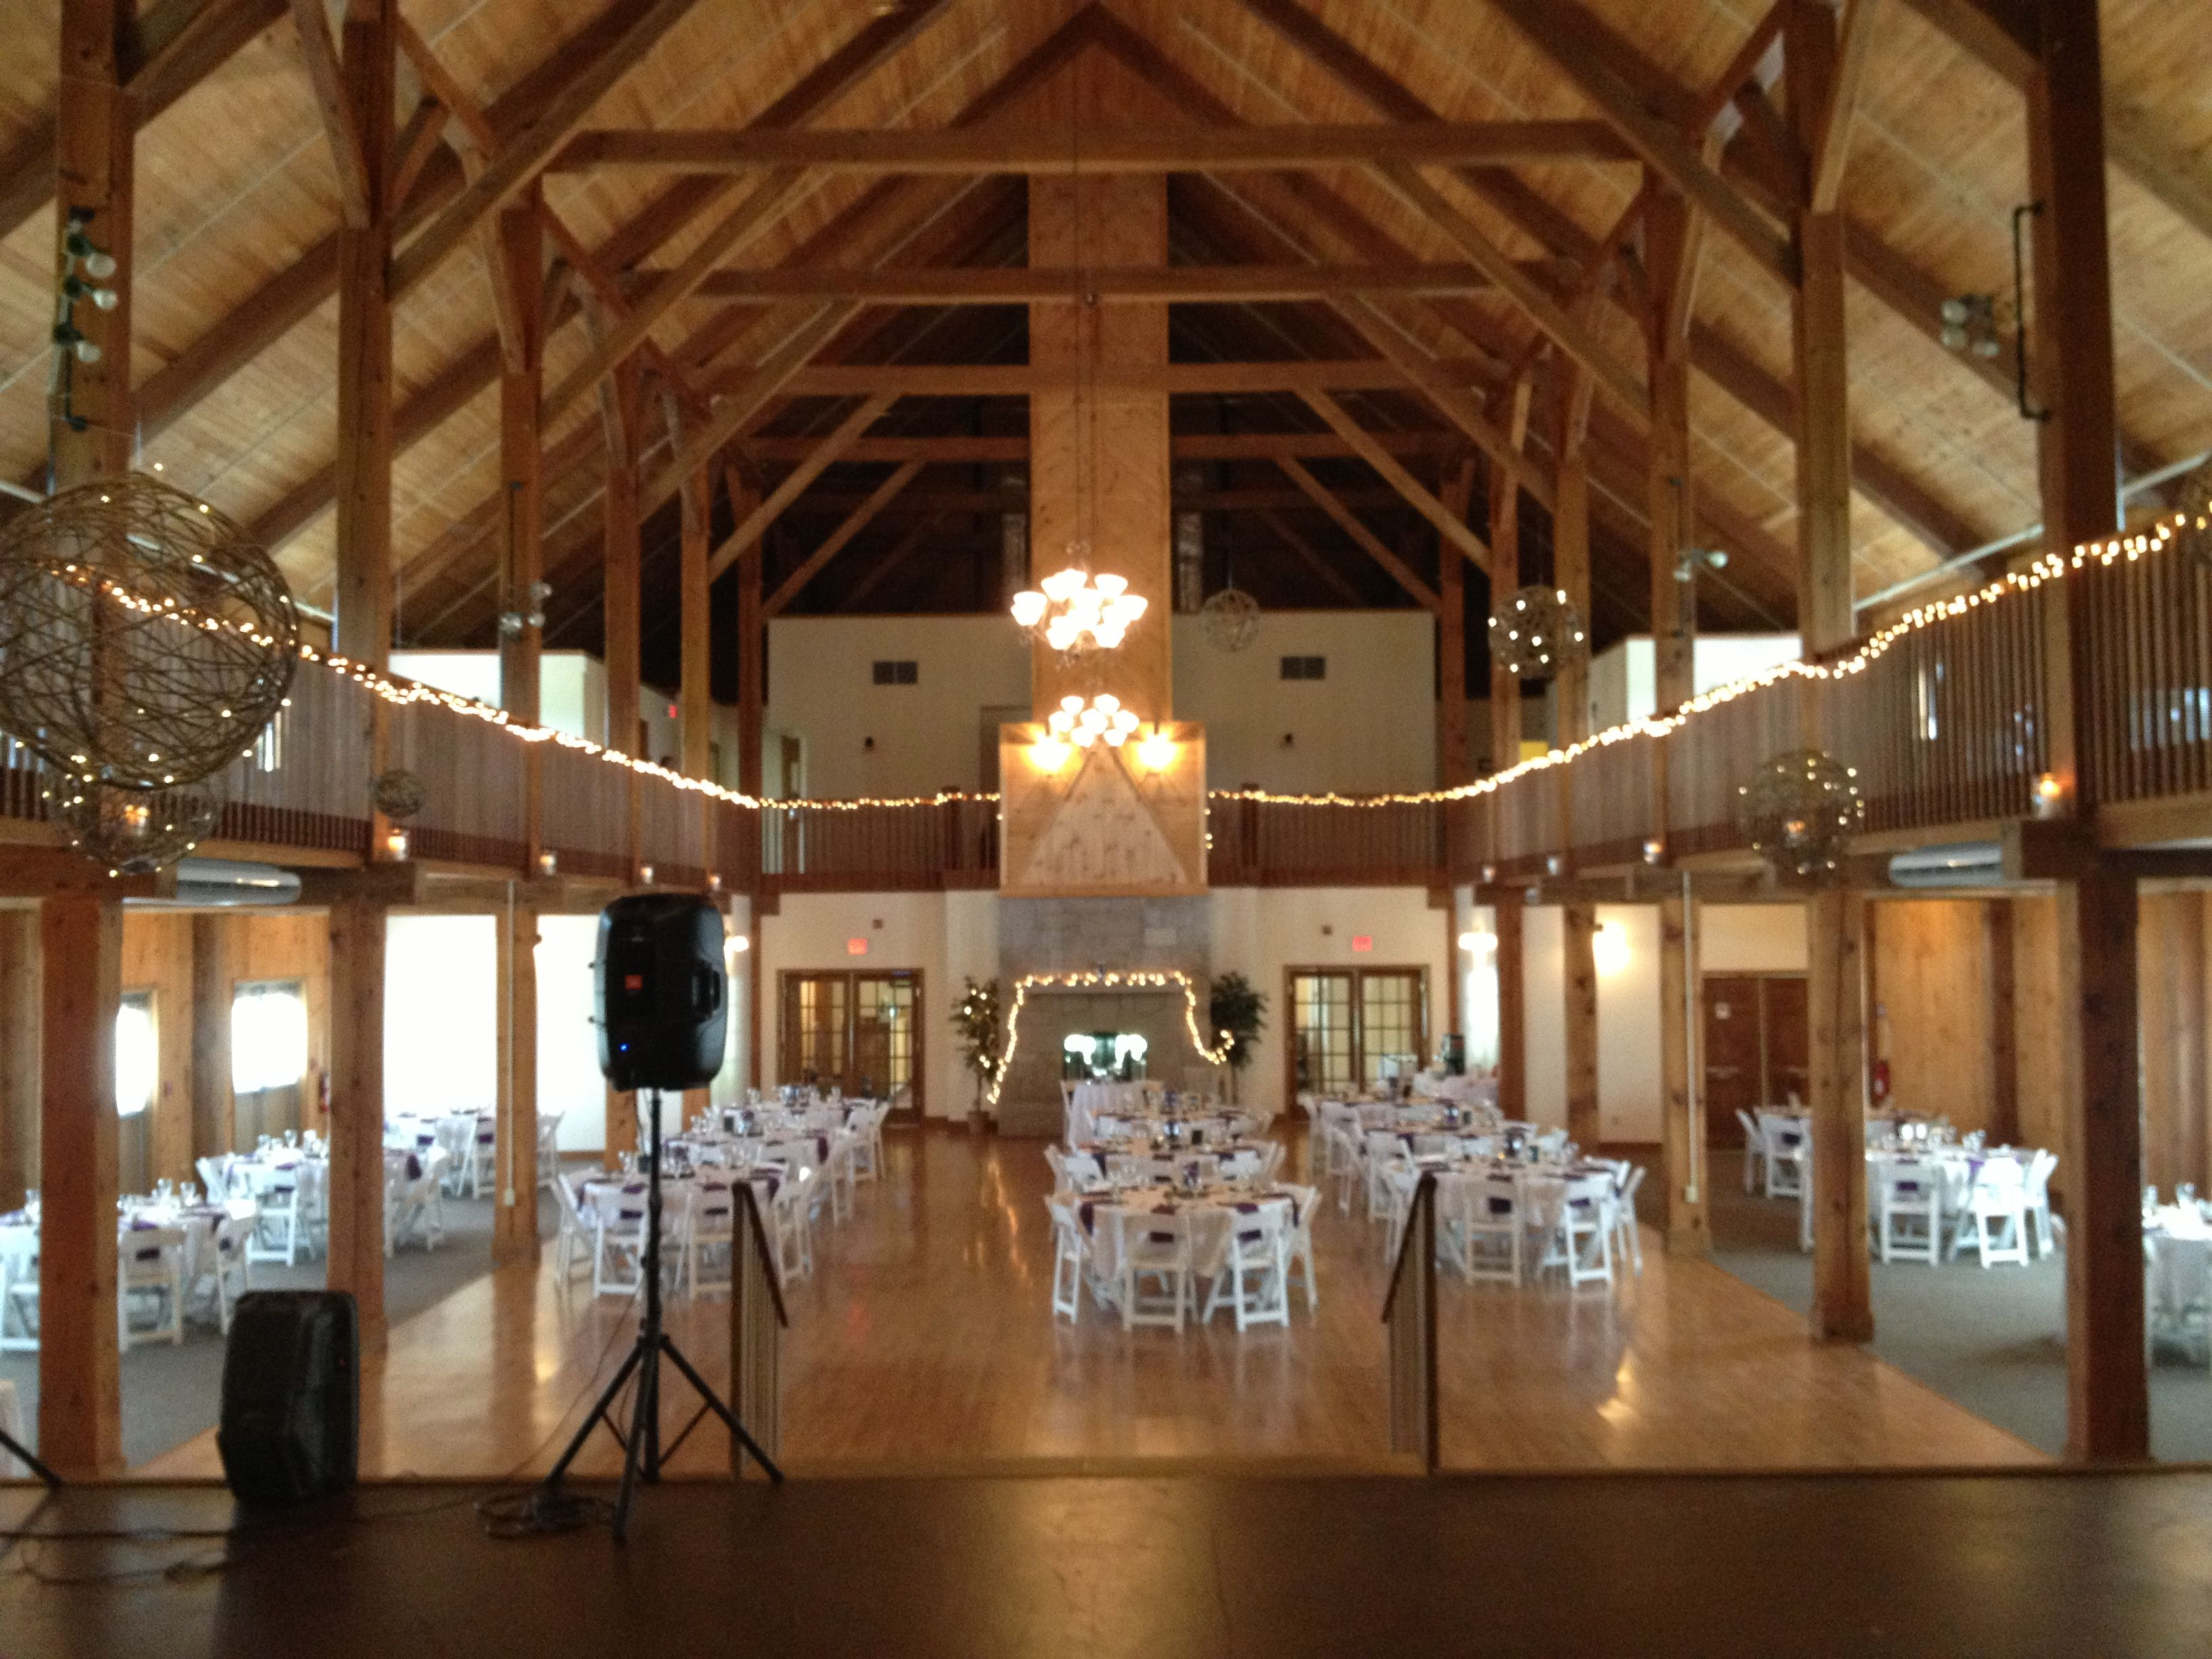 The Morgan Hill Event Center In Hermon Maine. Very Nice Wedding Venue. Www.djsmaine.com Www ...